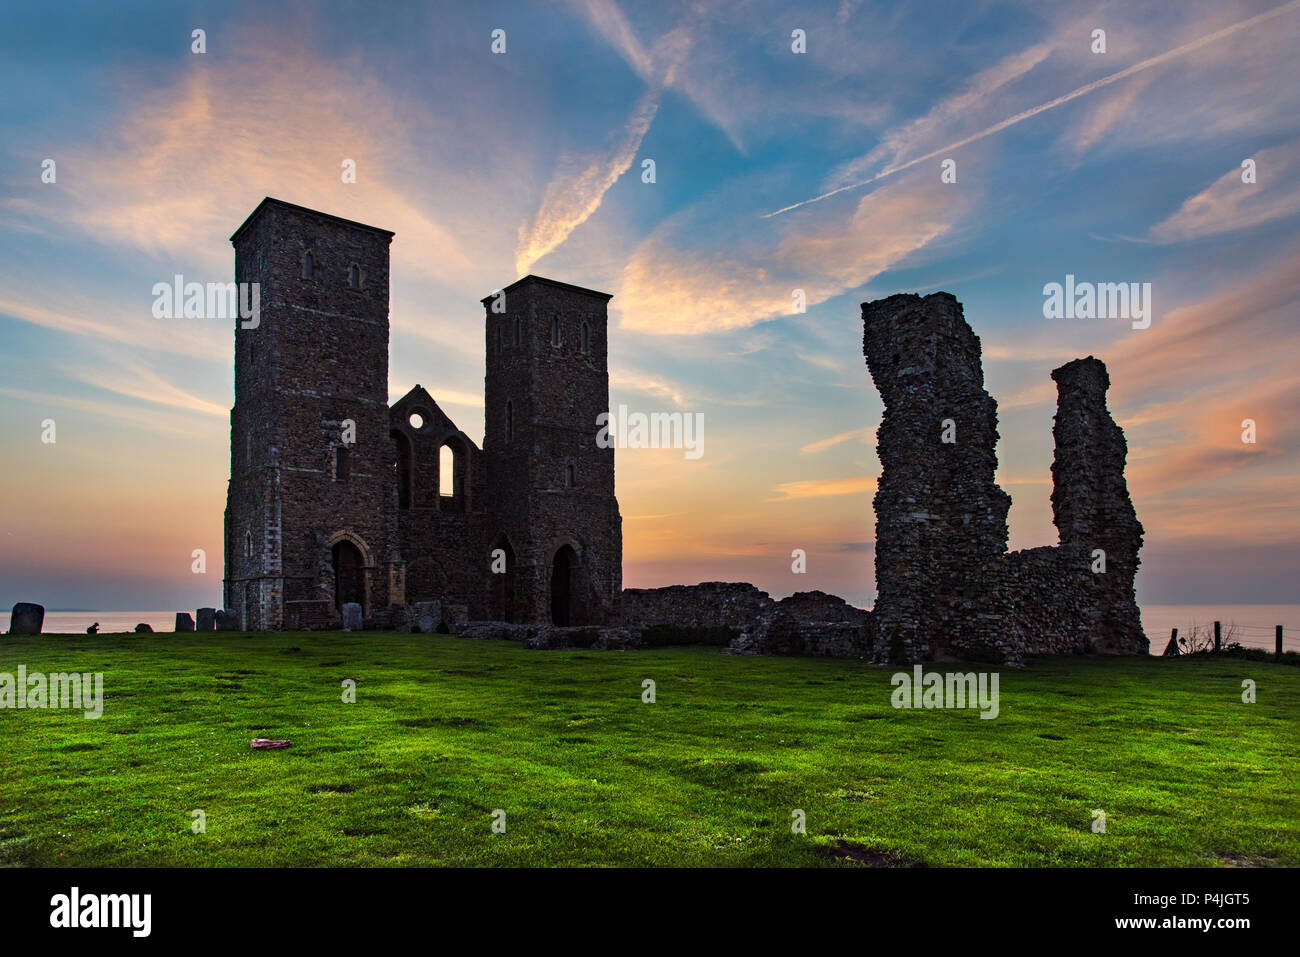 Sunset at Reculver, on the North Kent Coast, near Herne Bay, Kent, UK. Stock Photo